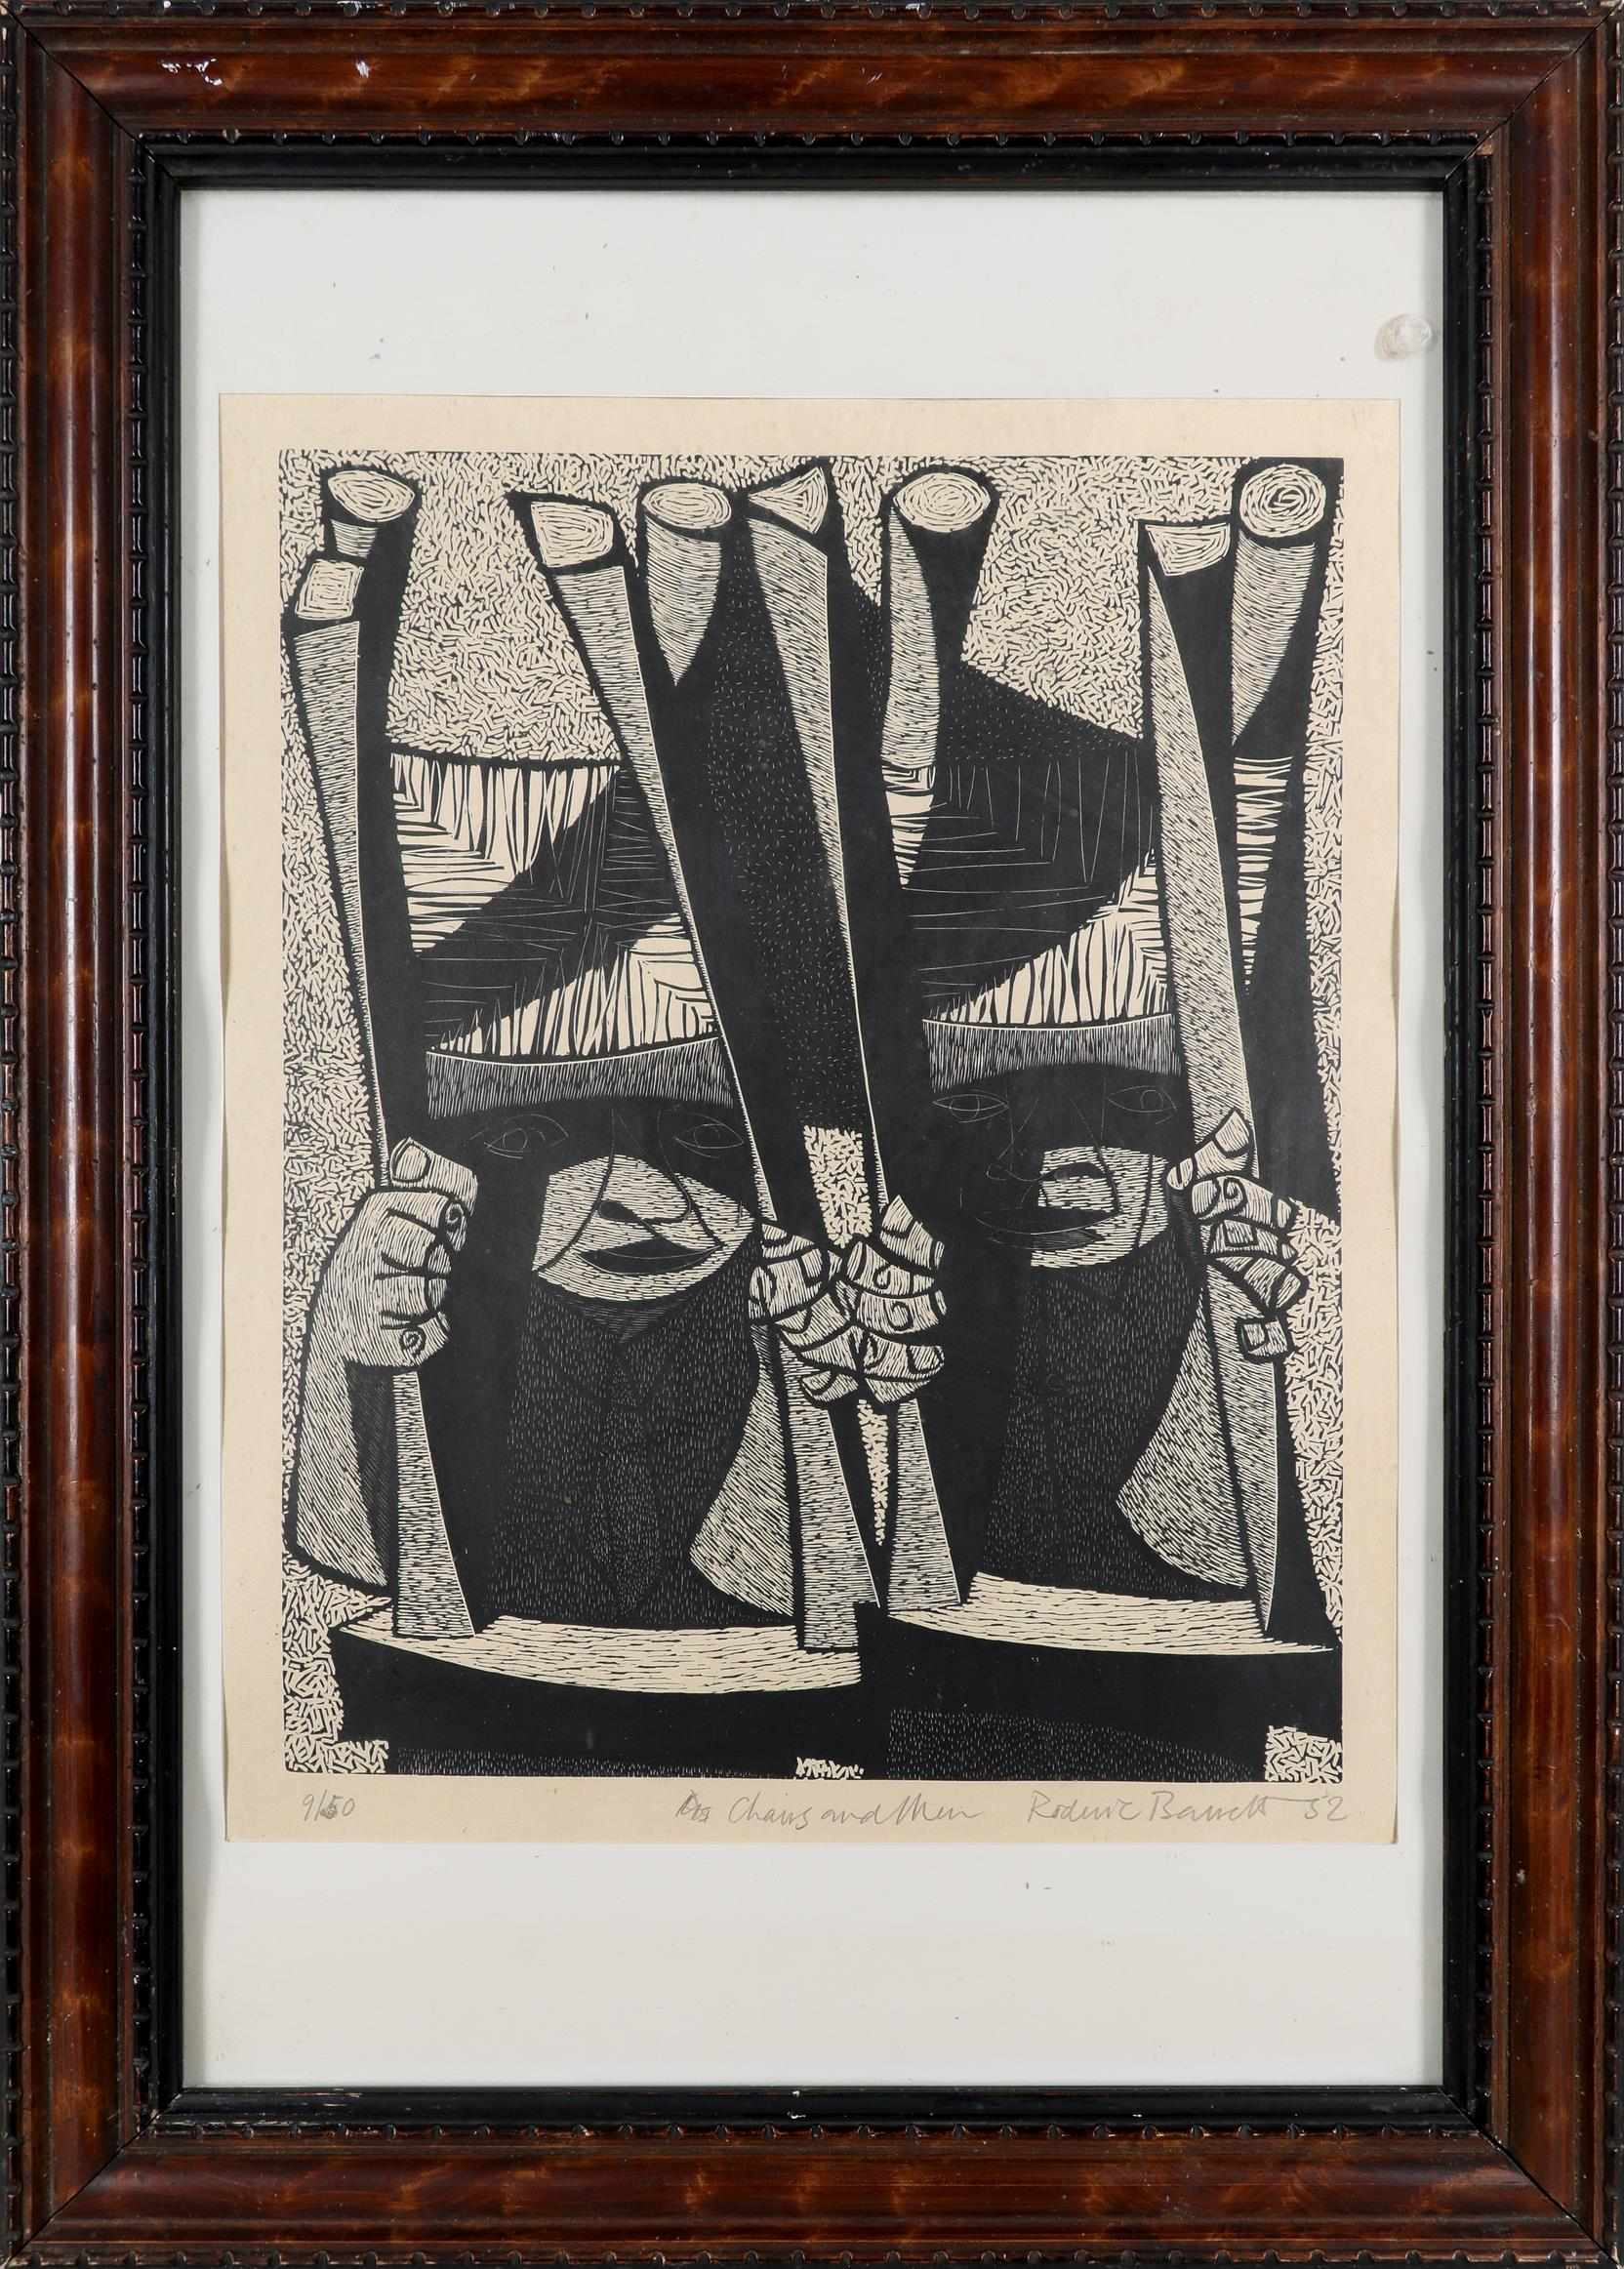 ‡Roderic Barrett (1920-2000) Chairs and Men Signed, dated, numbered and inscribed 9/50 Chairs and - Image 2 of 3